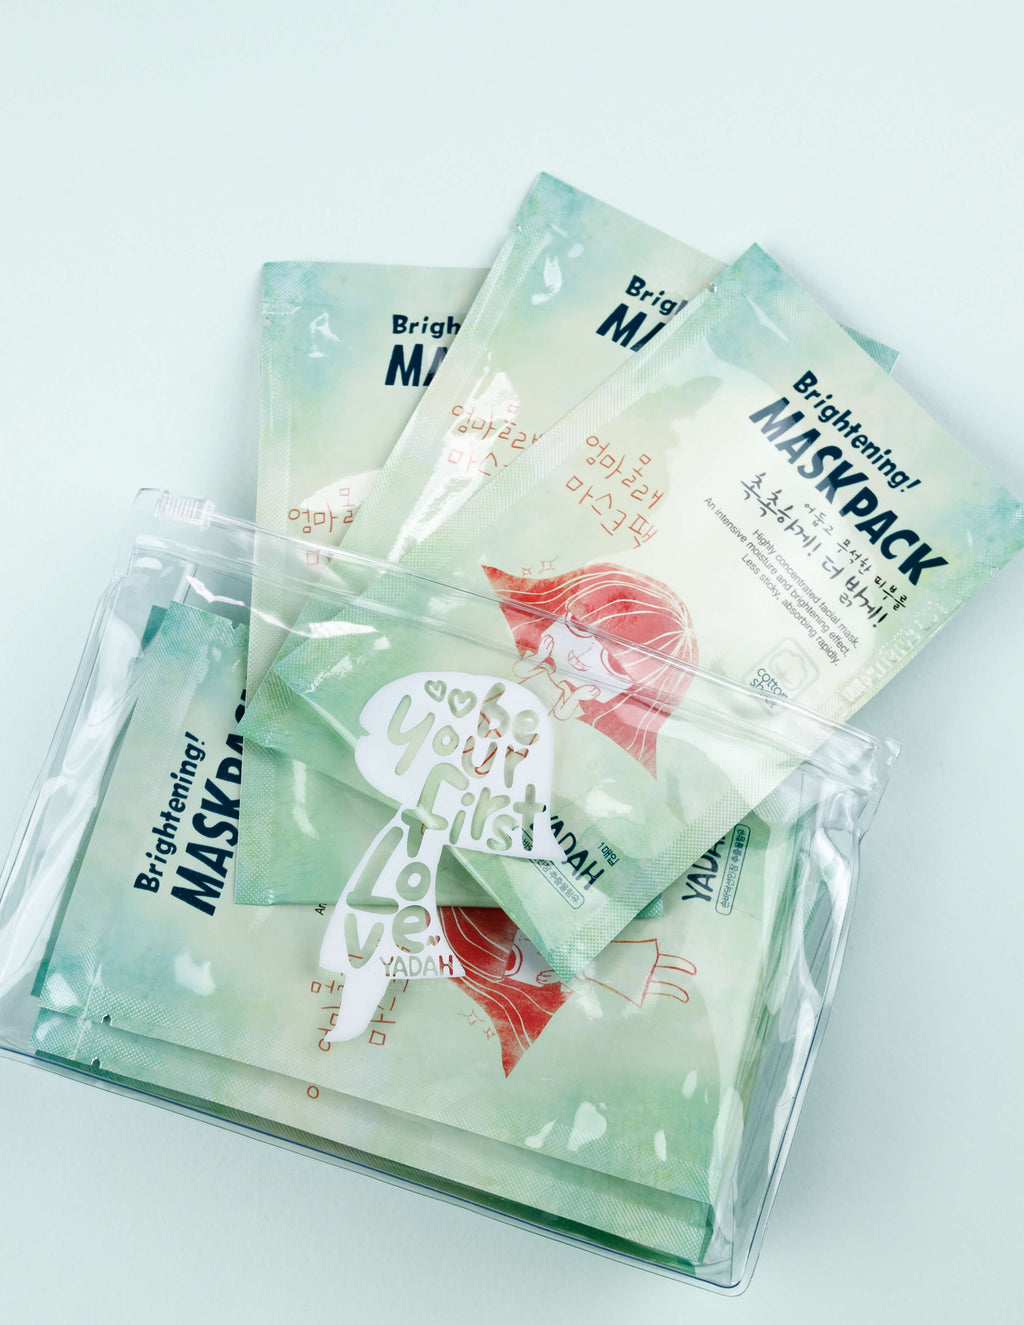 Brightening Mask Pack 5pcs (with pouch)